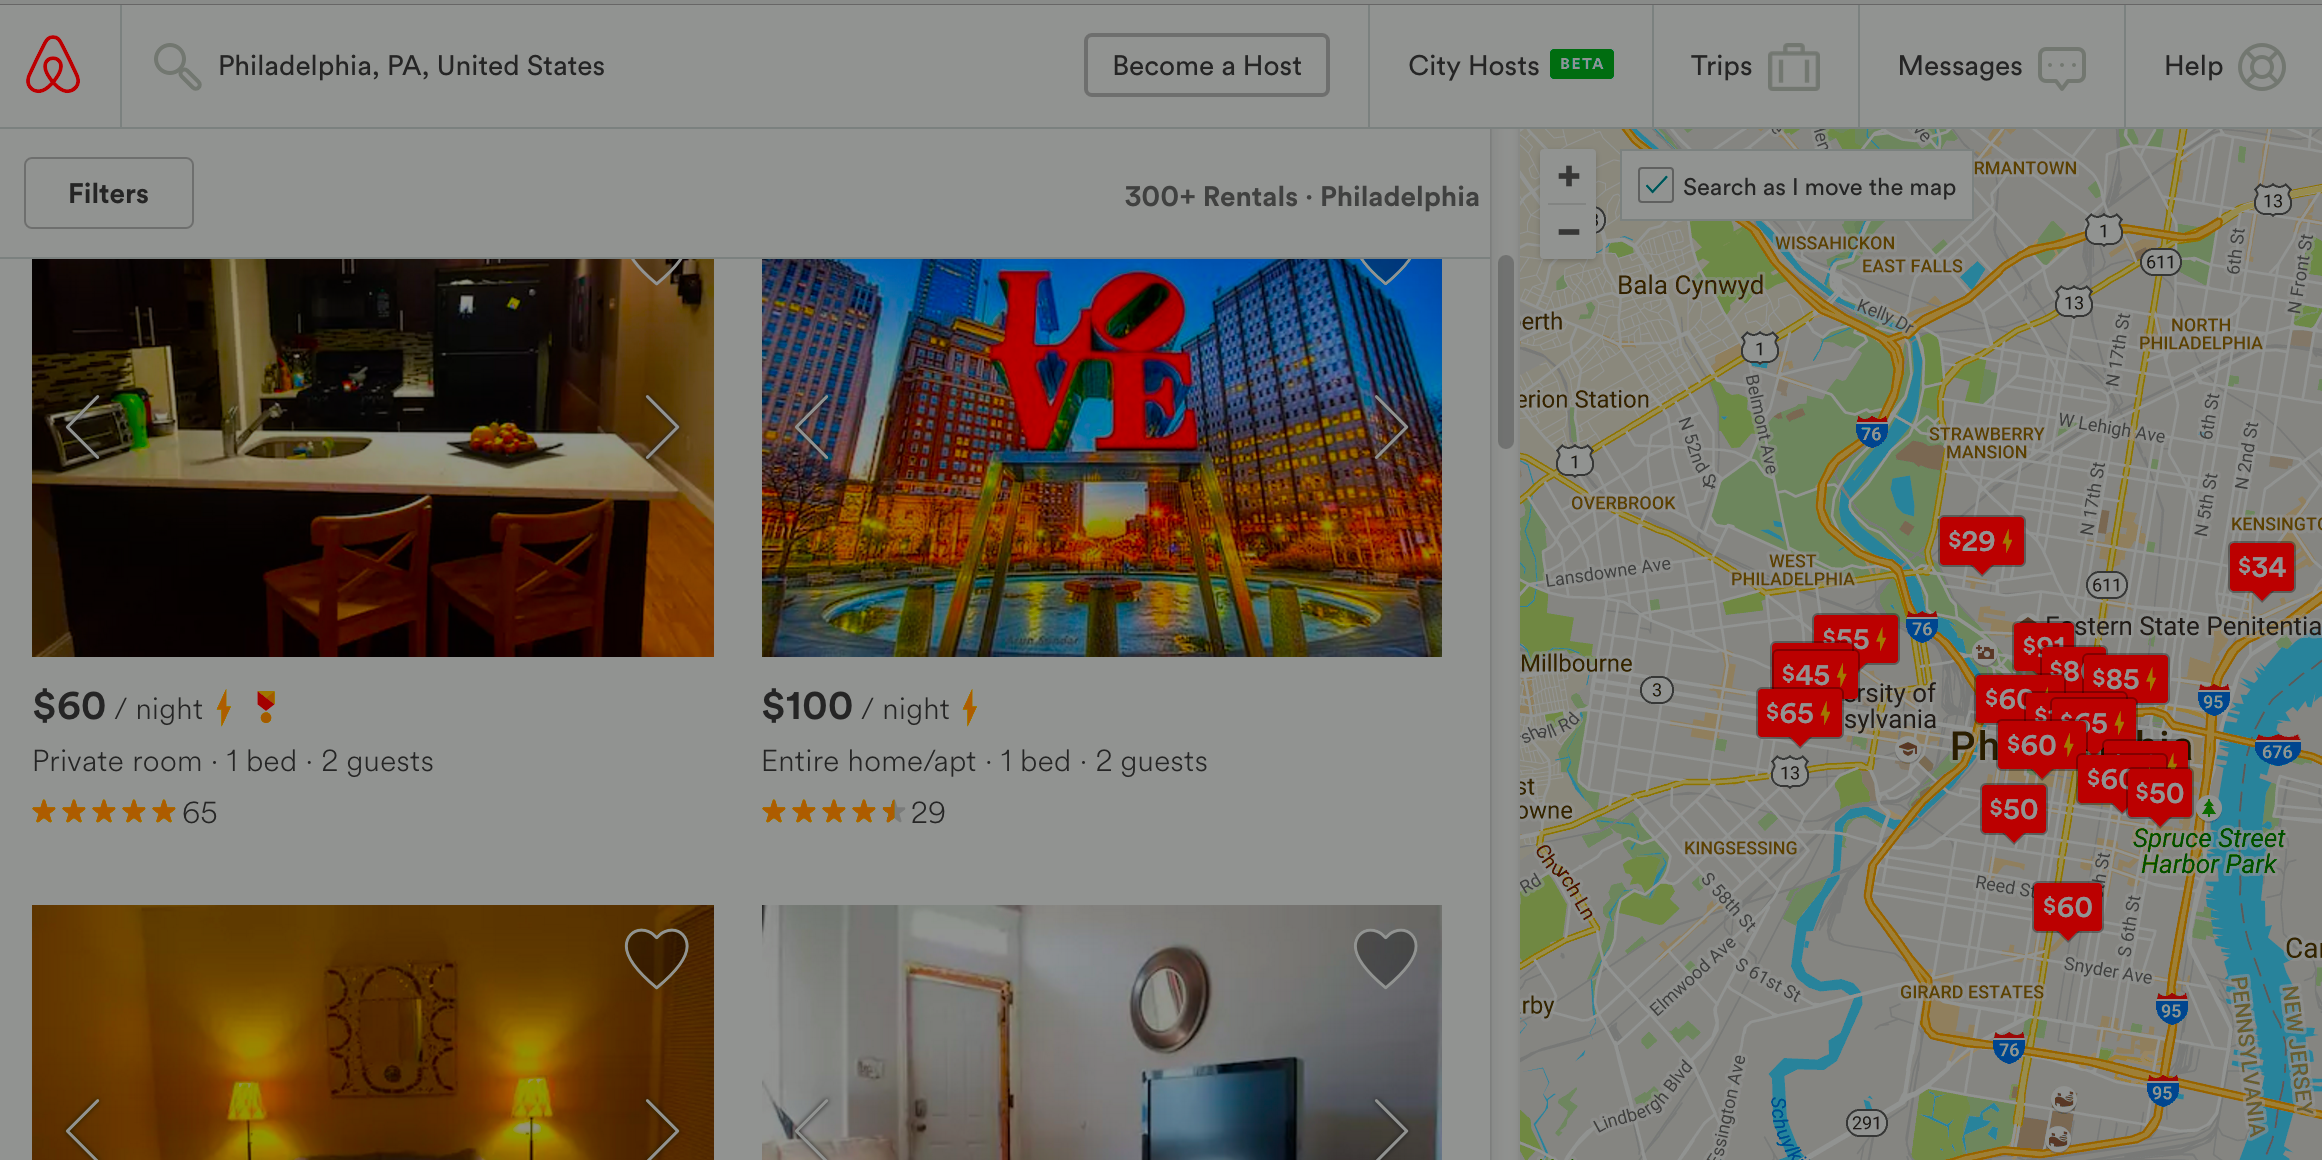 Judge: Airbnb Can Force Users' Racial Discrimination Claims Out Of Courtroom